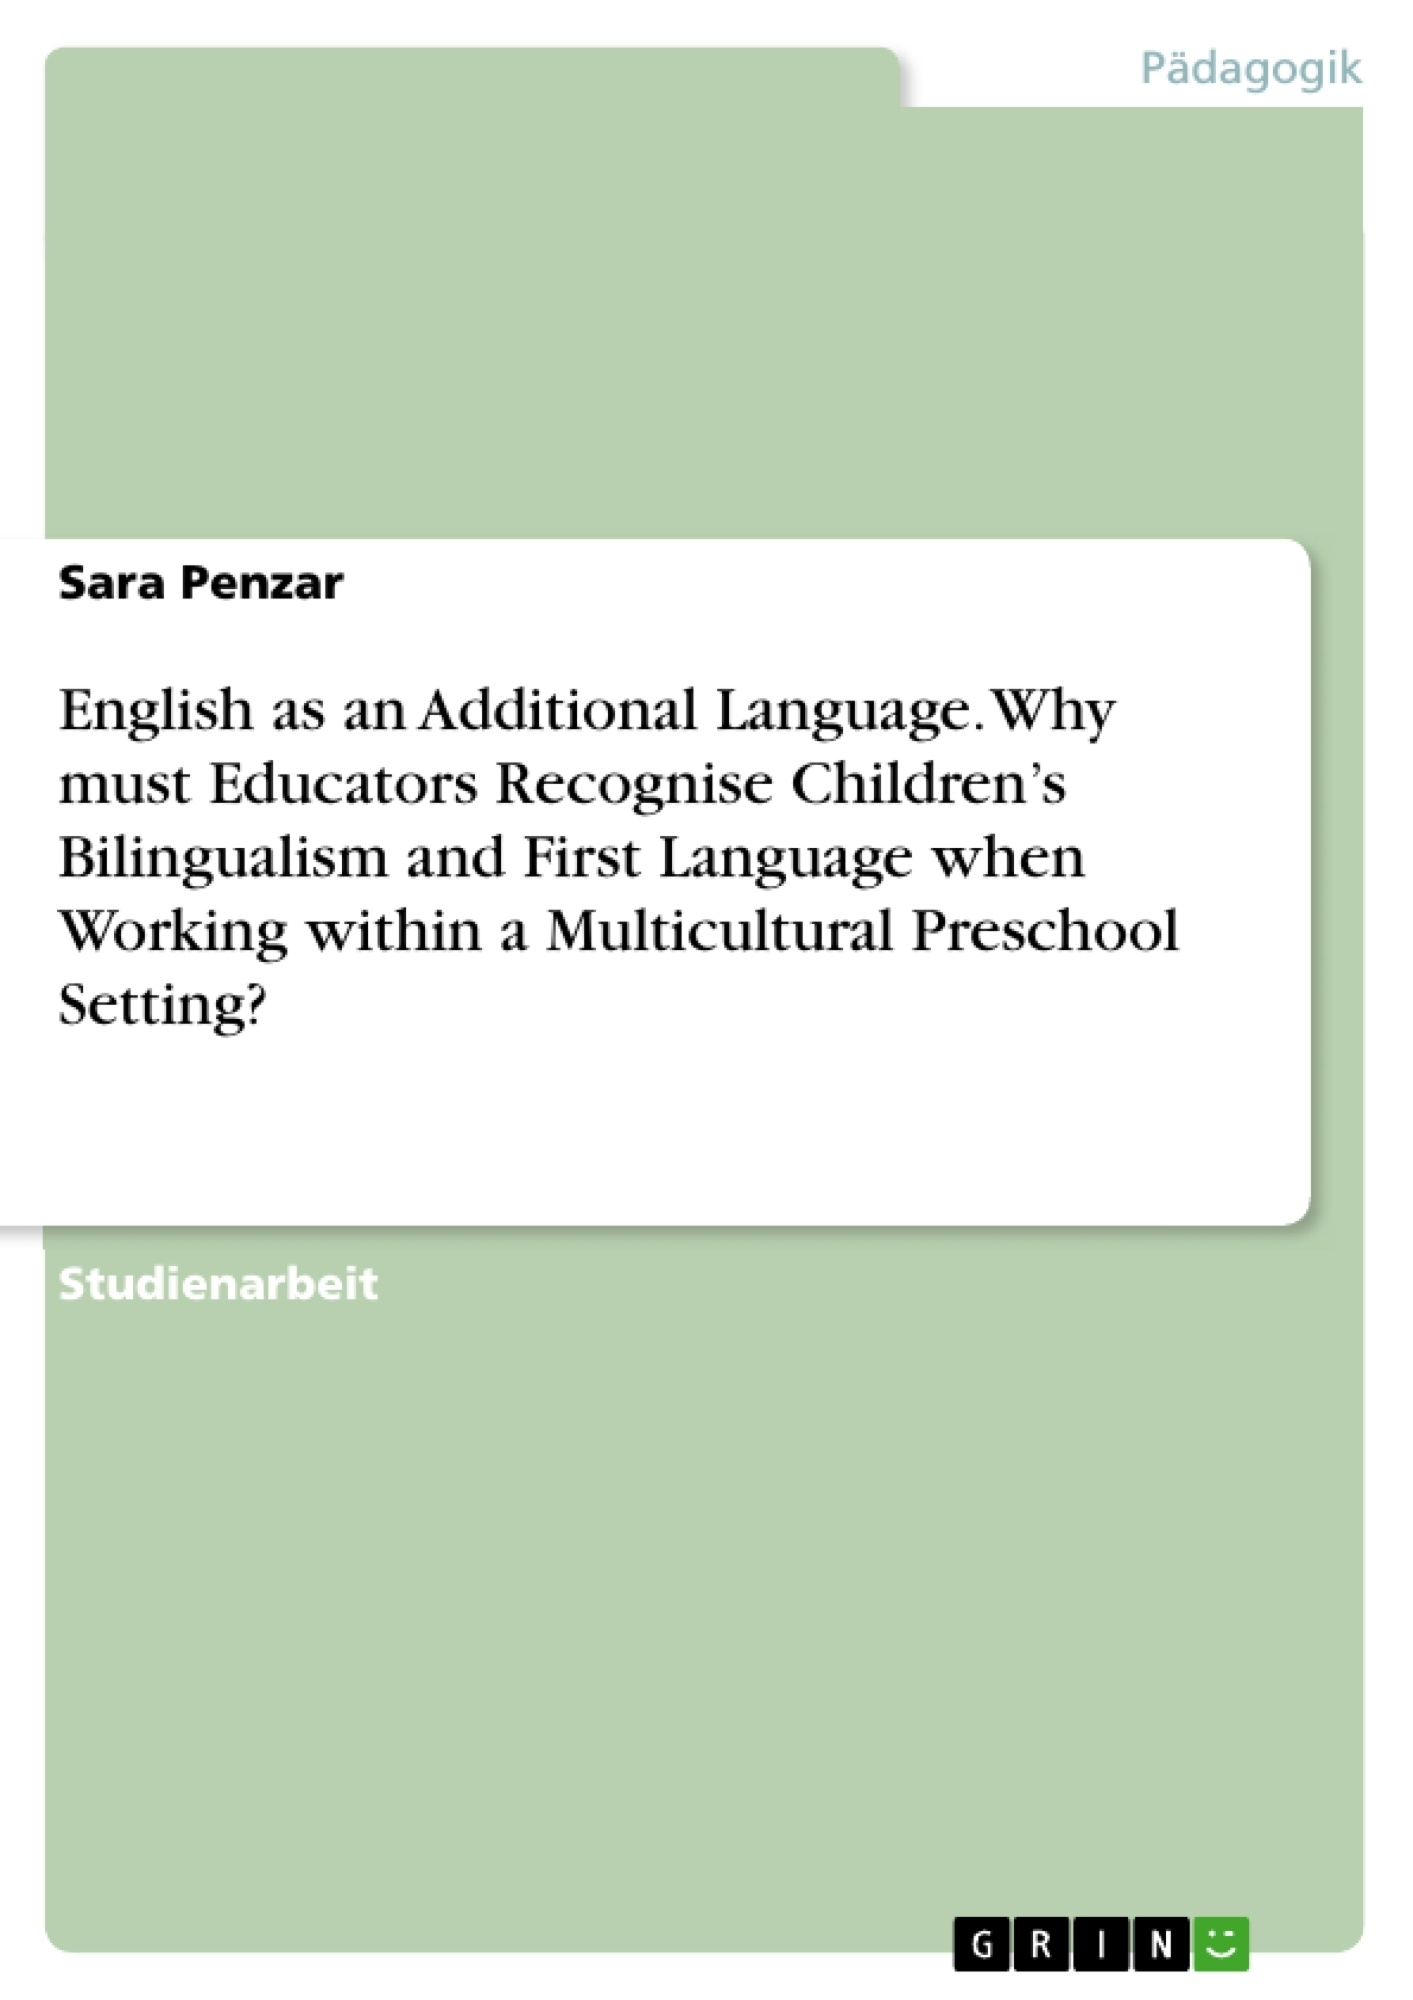 Titel: English as an Additional Language. Why must Educators Recognise Children's Bilingualism and First Language when Working within a Multicultural Preschool Setting?